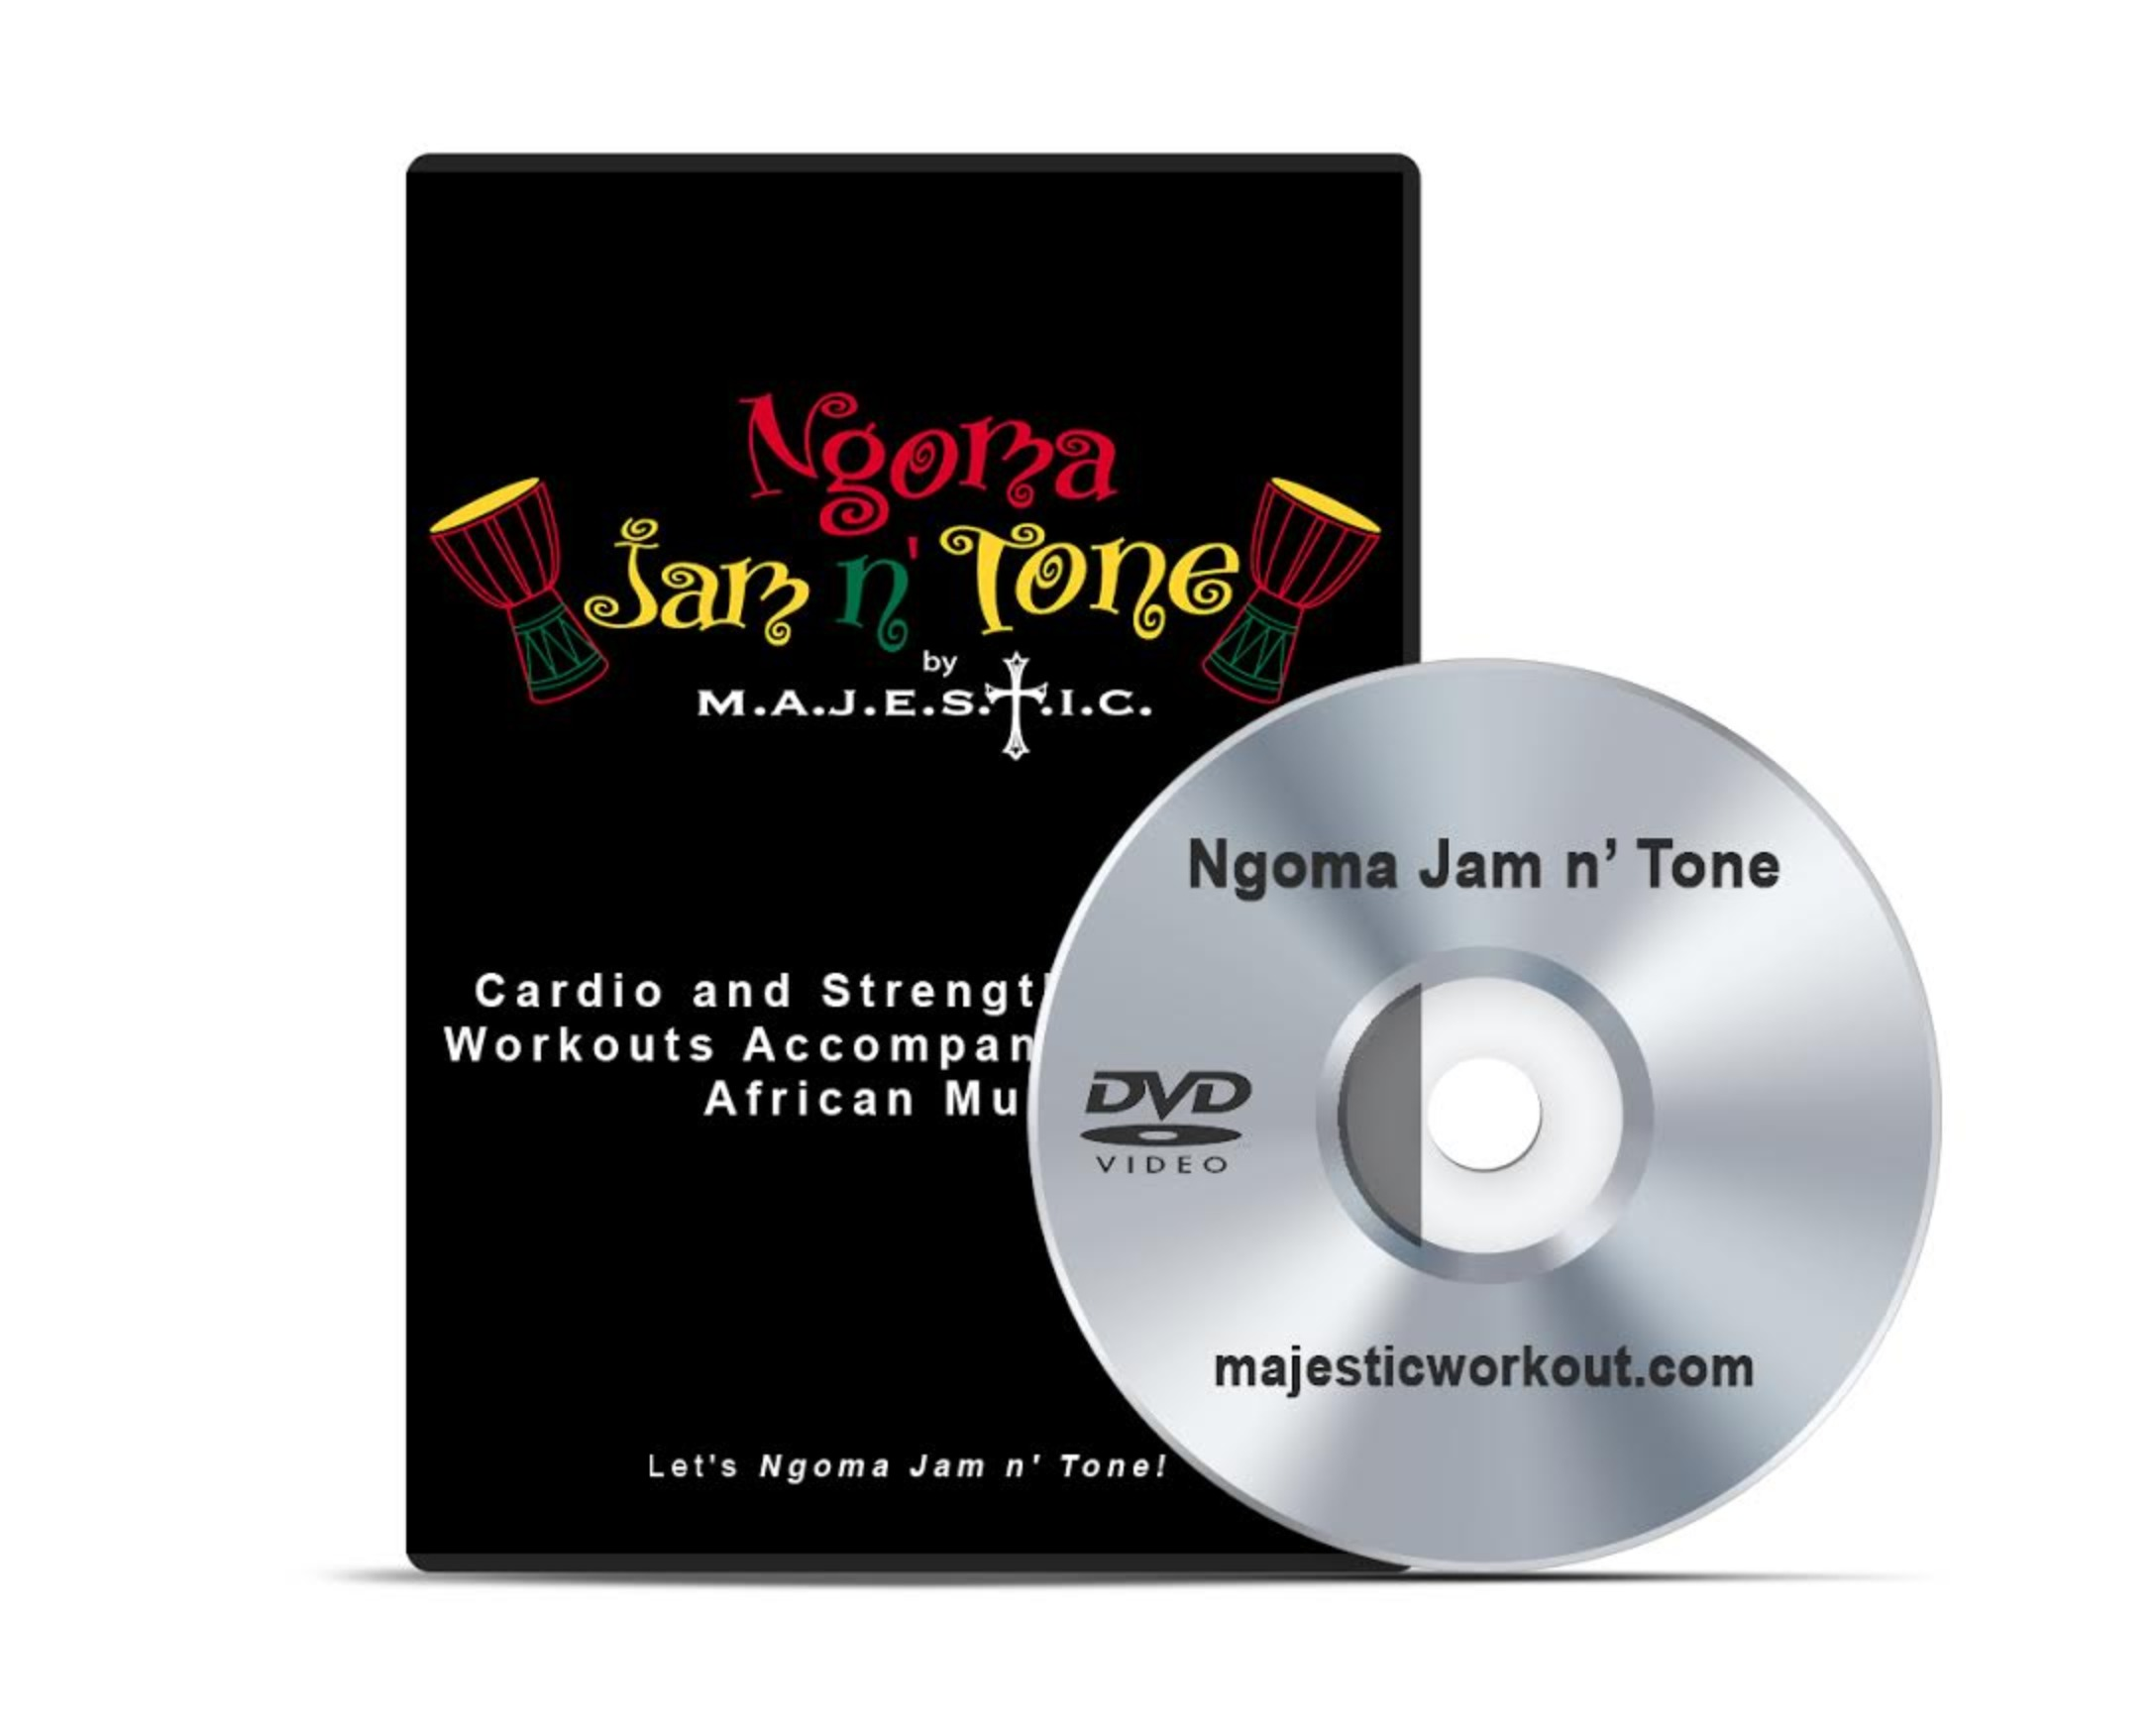 DVD | Ngoma Jam n' Tone Exercise Video